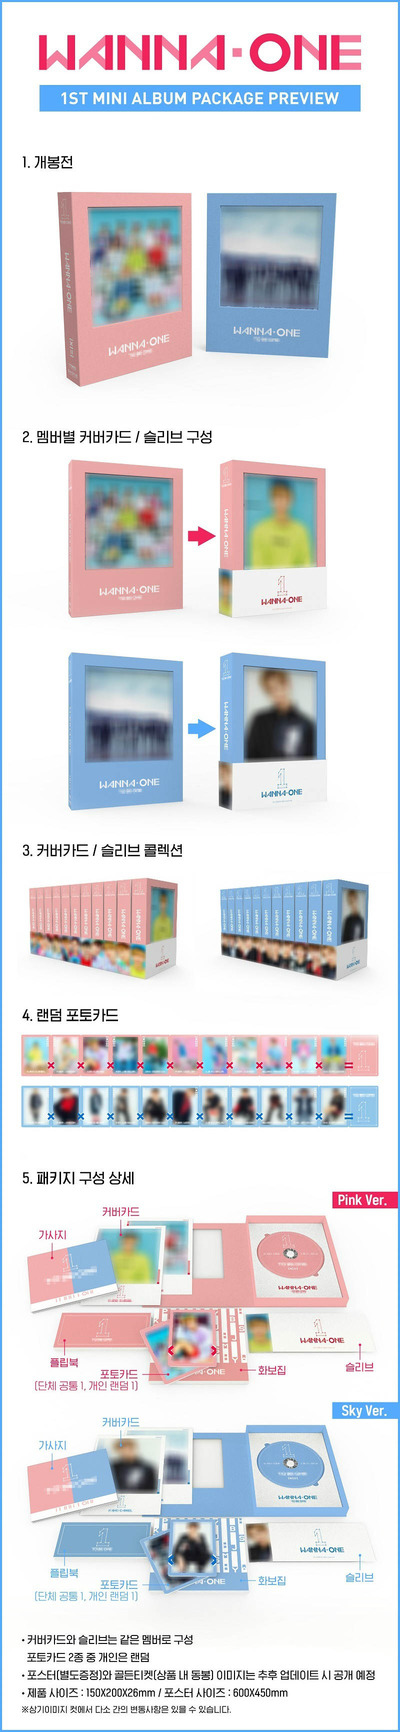 wannaone_1stmini_contents